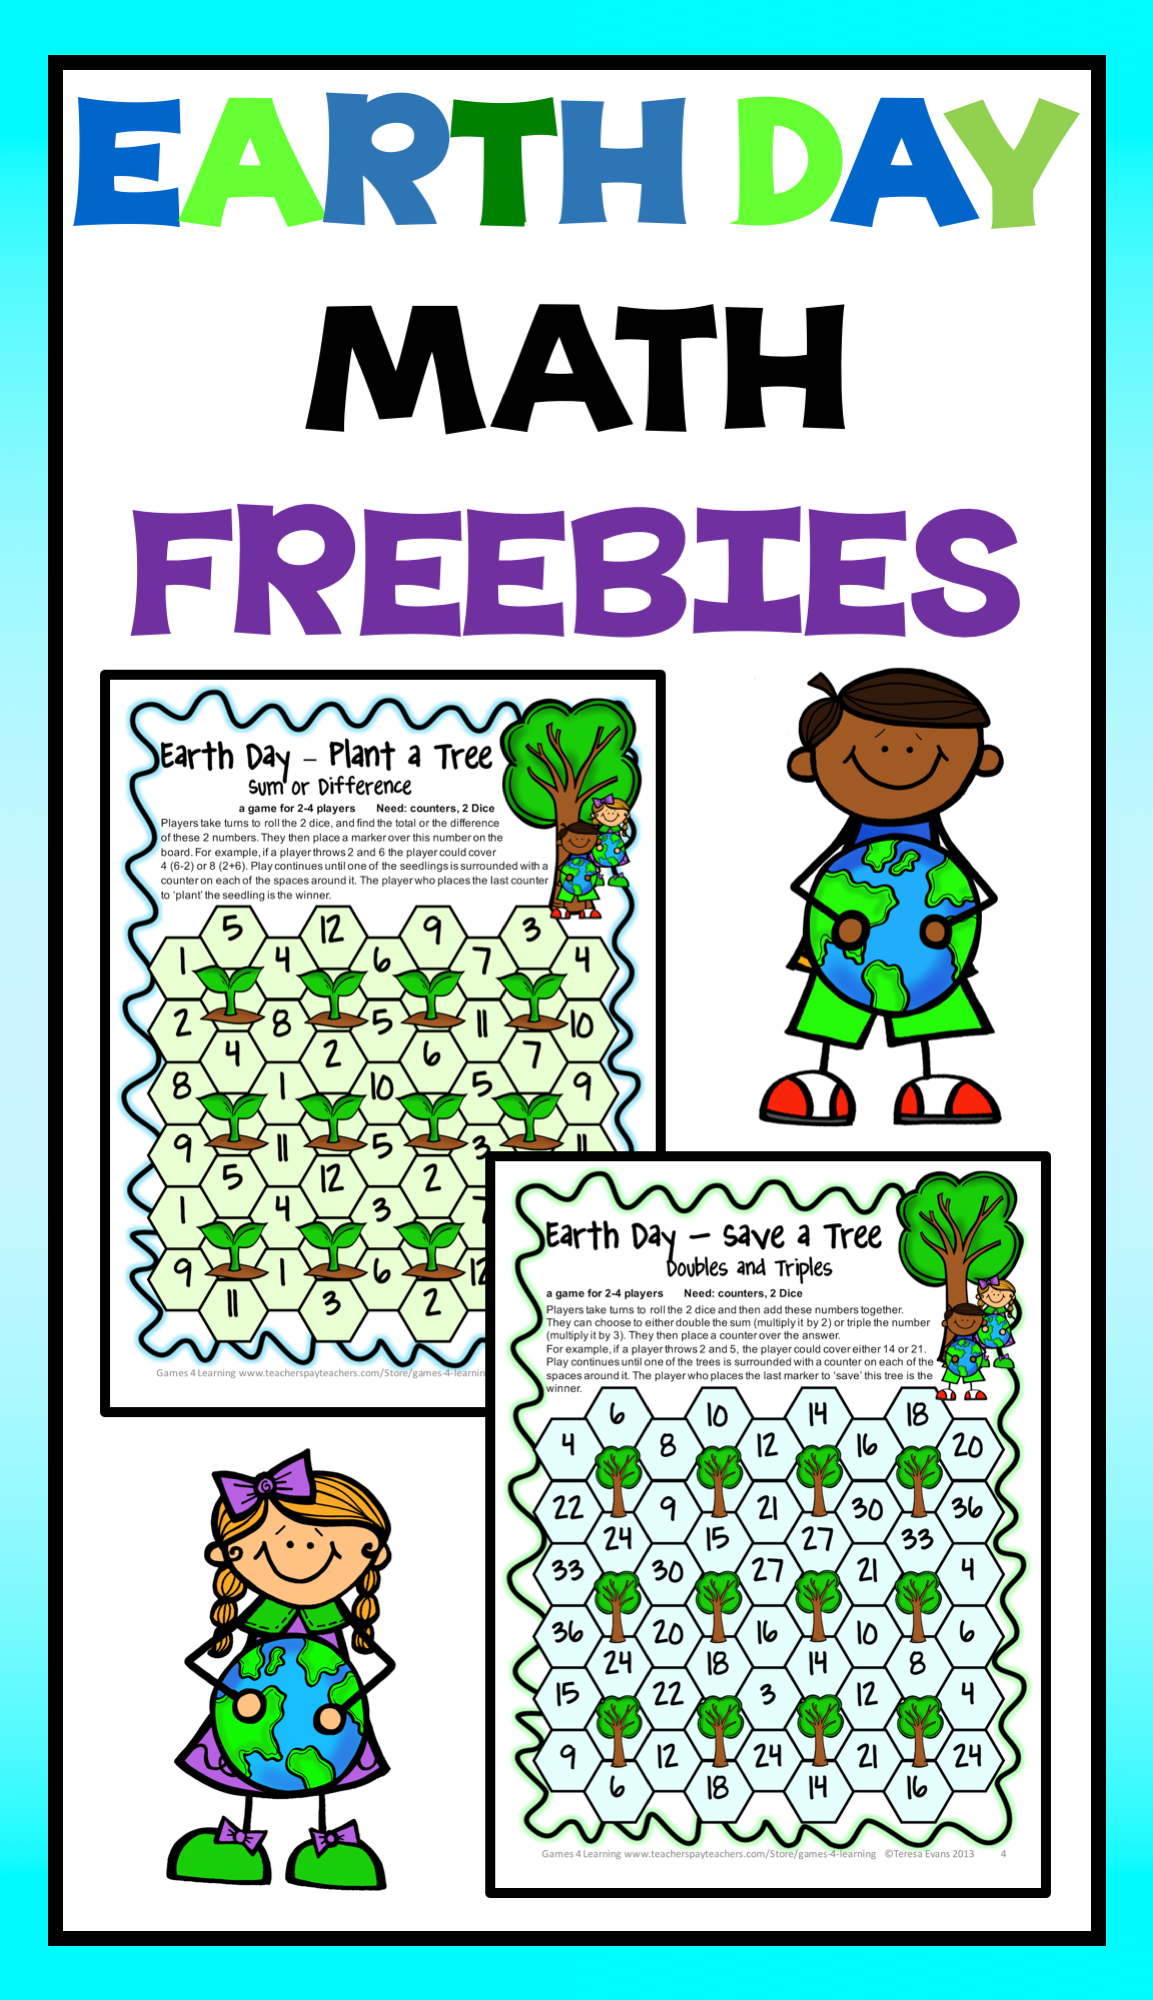 Earth Day Activity Earth Day Math Games Freebie